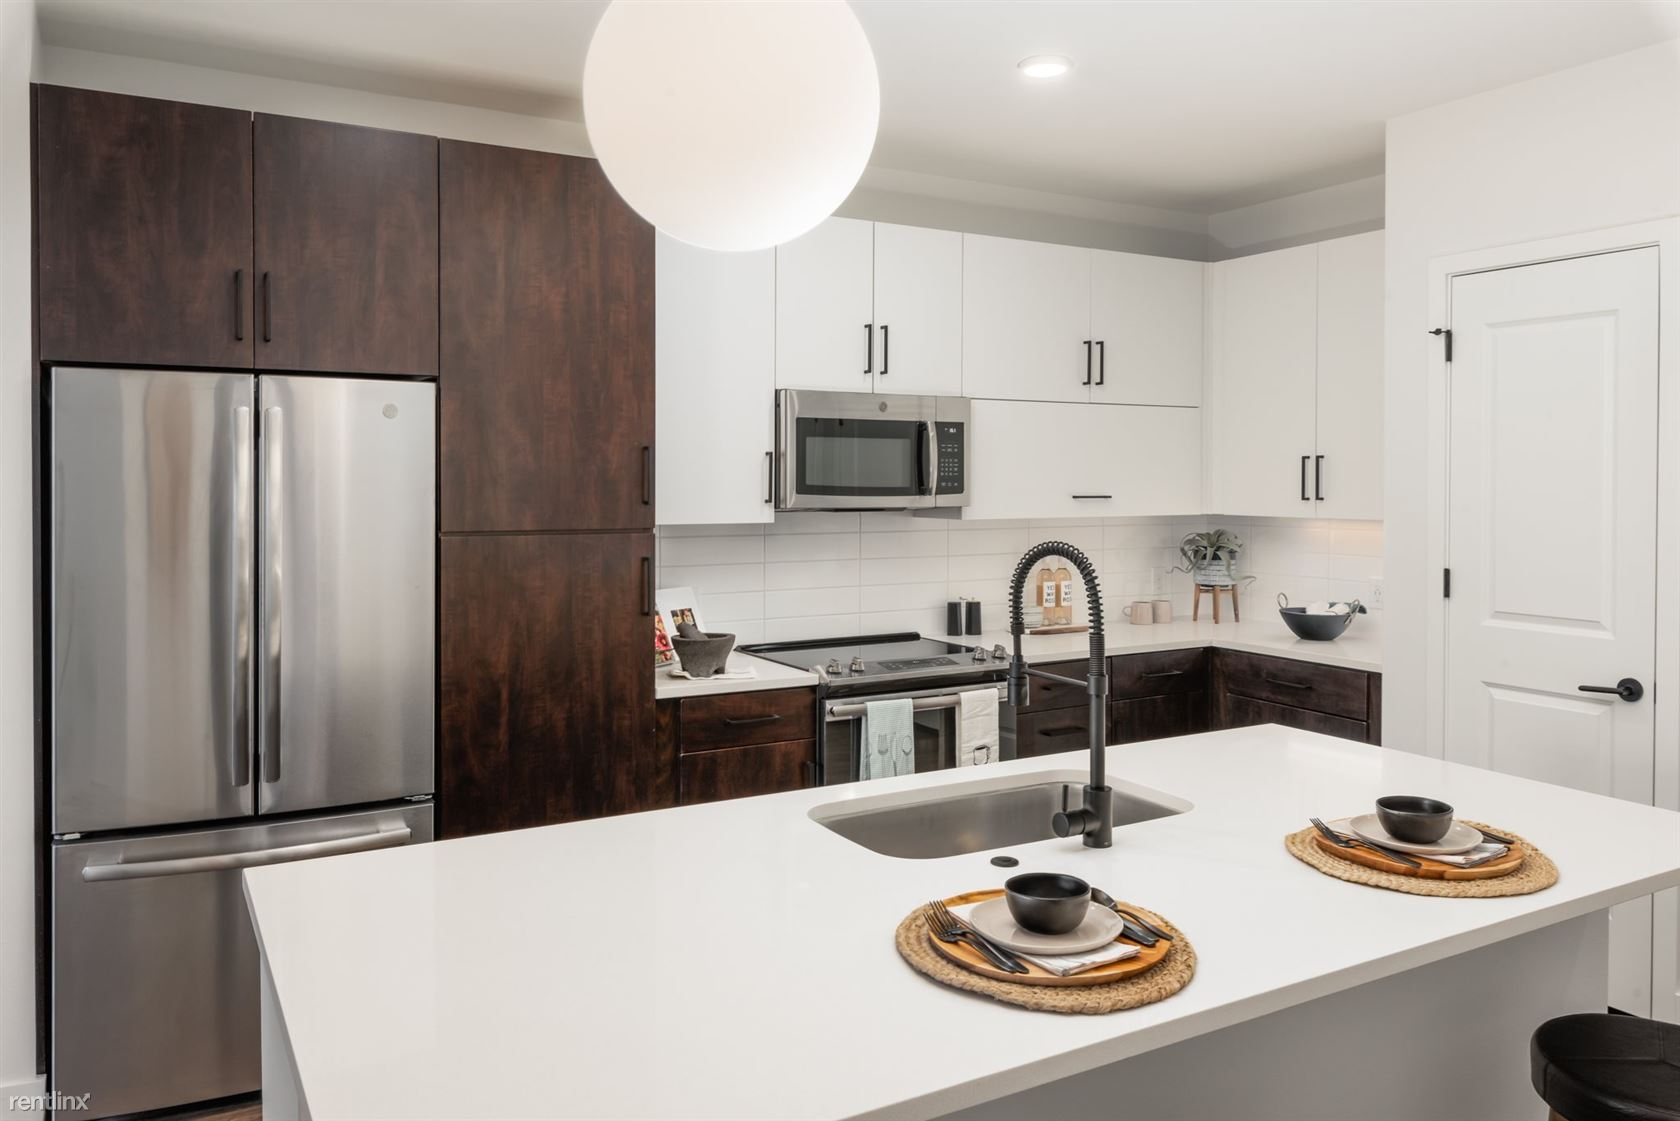 Brand New near Tempe Towne lake, Tempe, AZ - $1,299